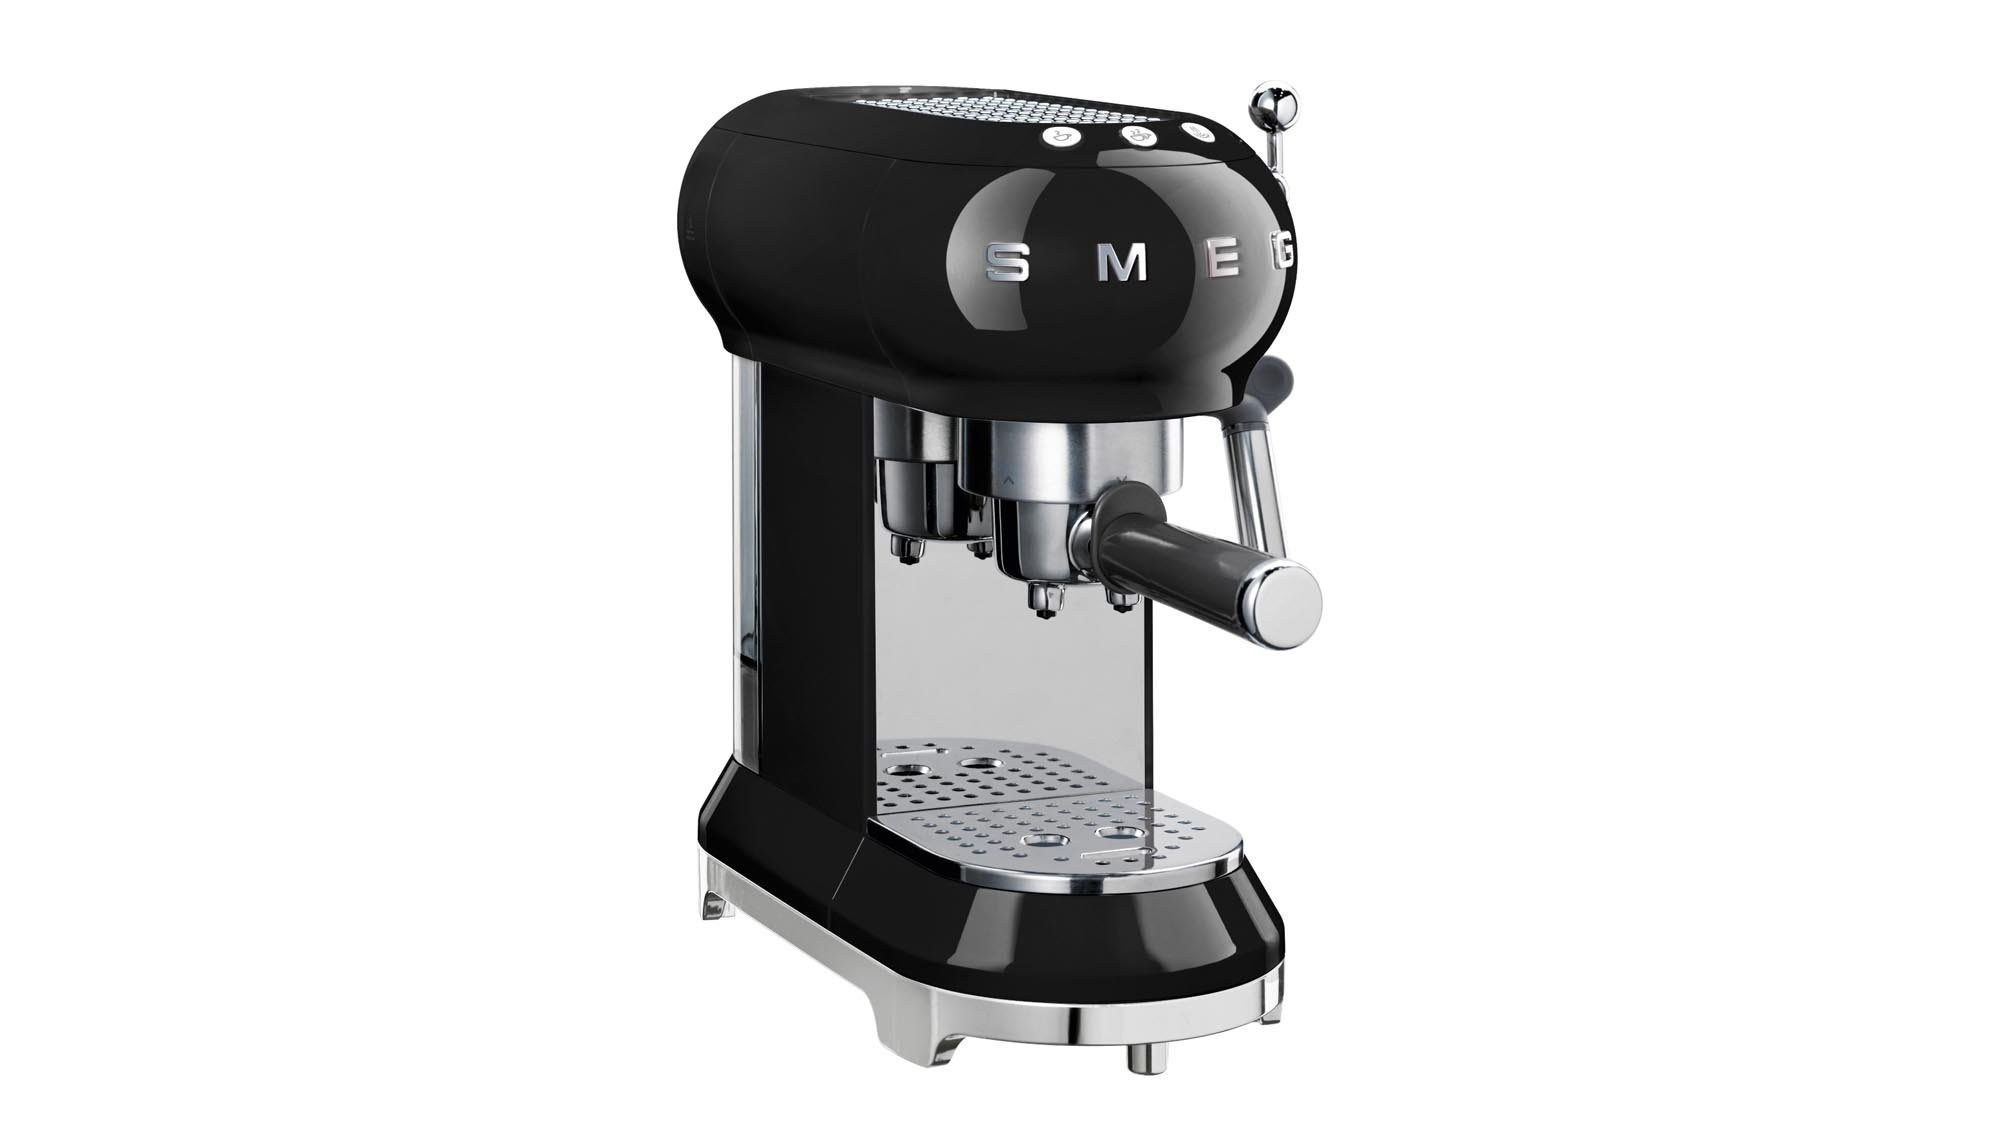 Best coffee maker in the US 2019: How to pick the right ...